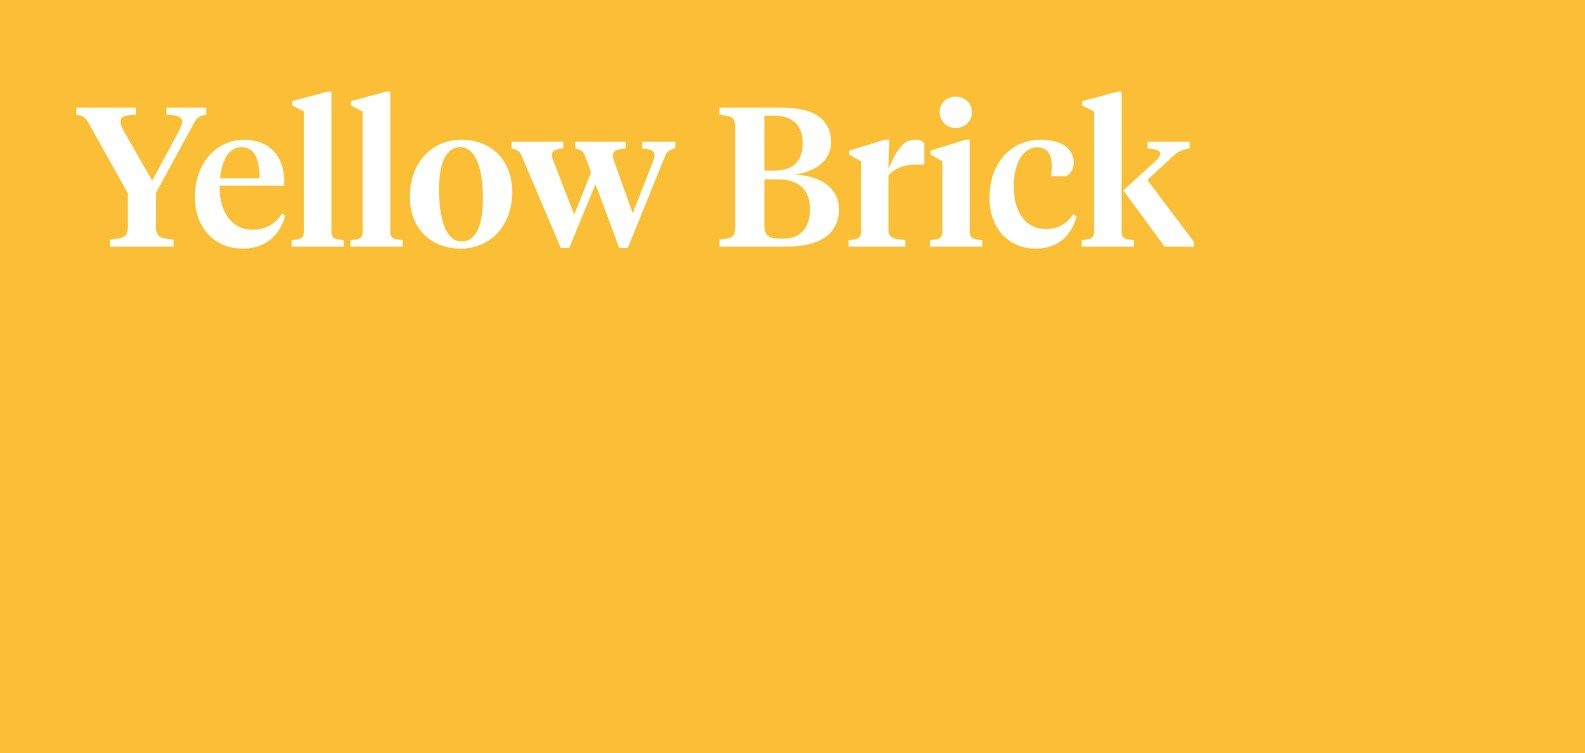 YellowBrick